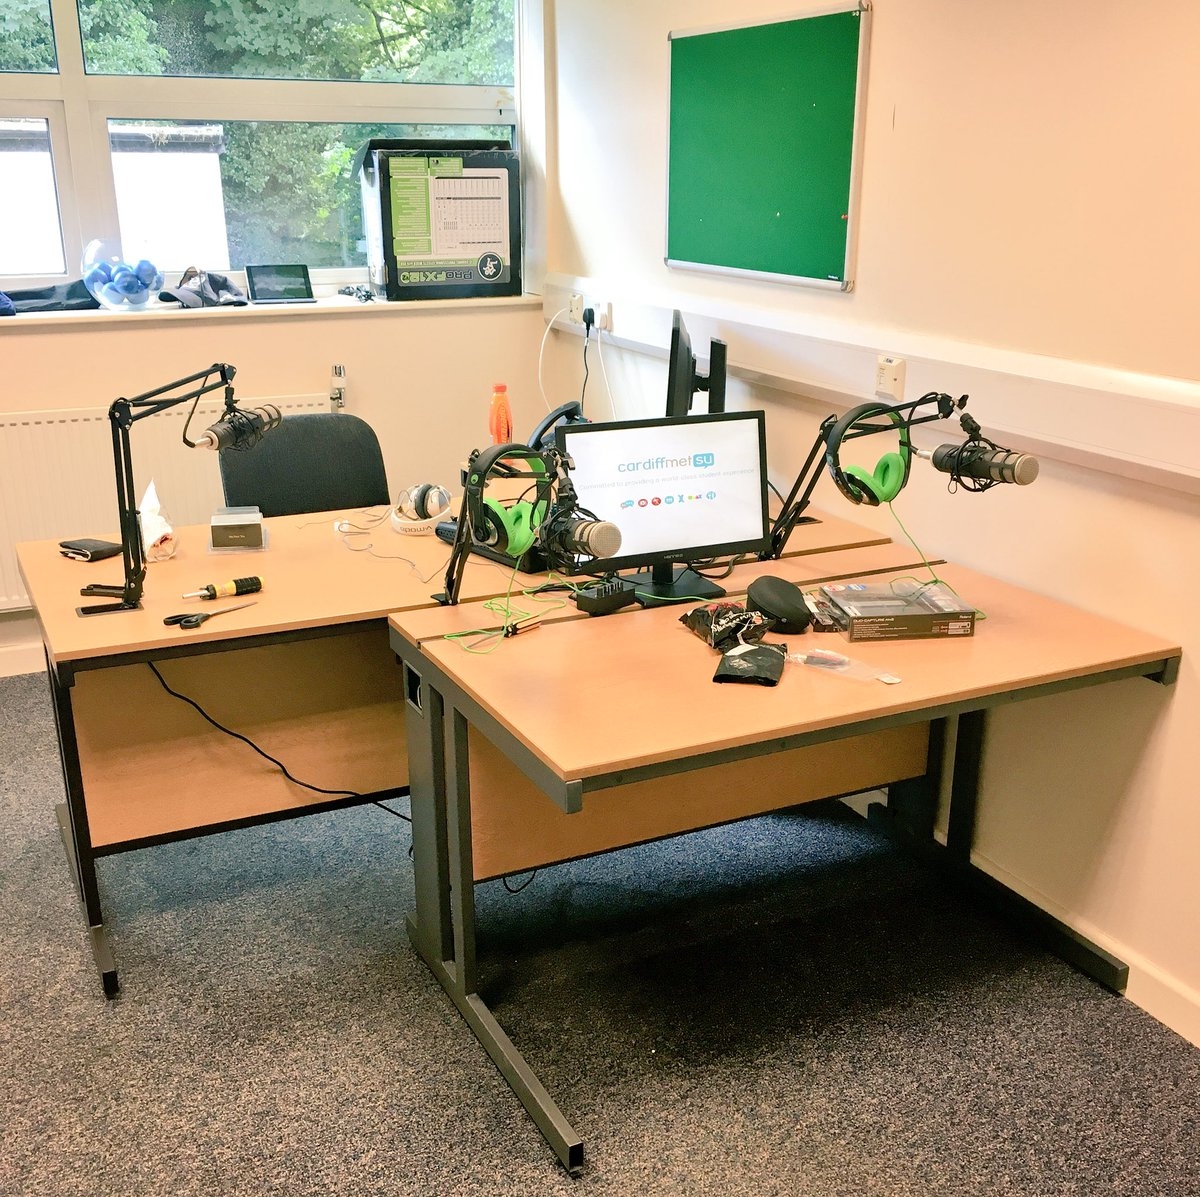 Equipment going in at Llandaff for our brand new Cardiff Met SU radio station! Want to get involved? Message us! https://t.co/5TUwauLYhT